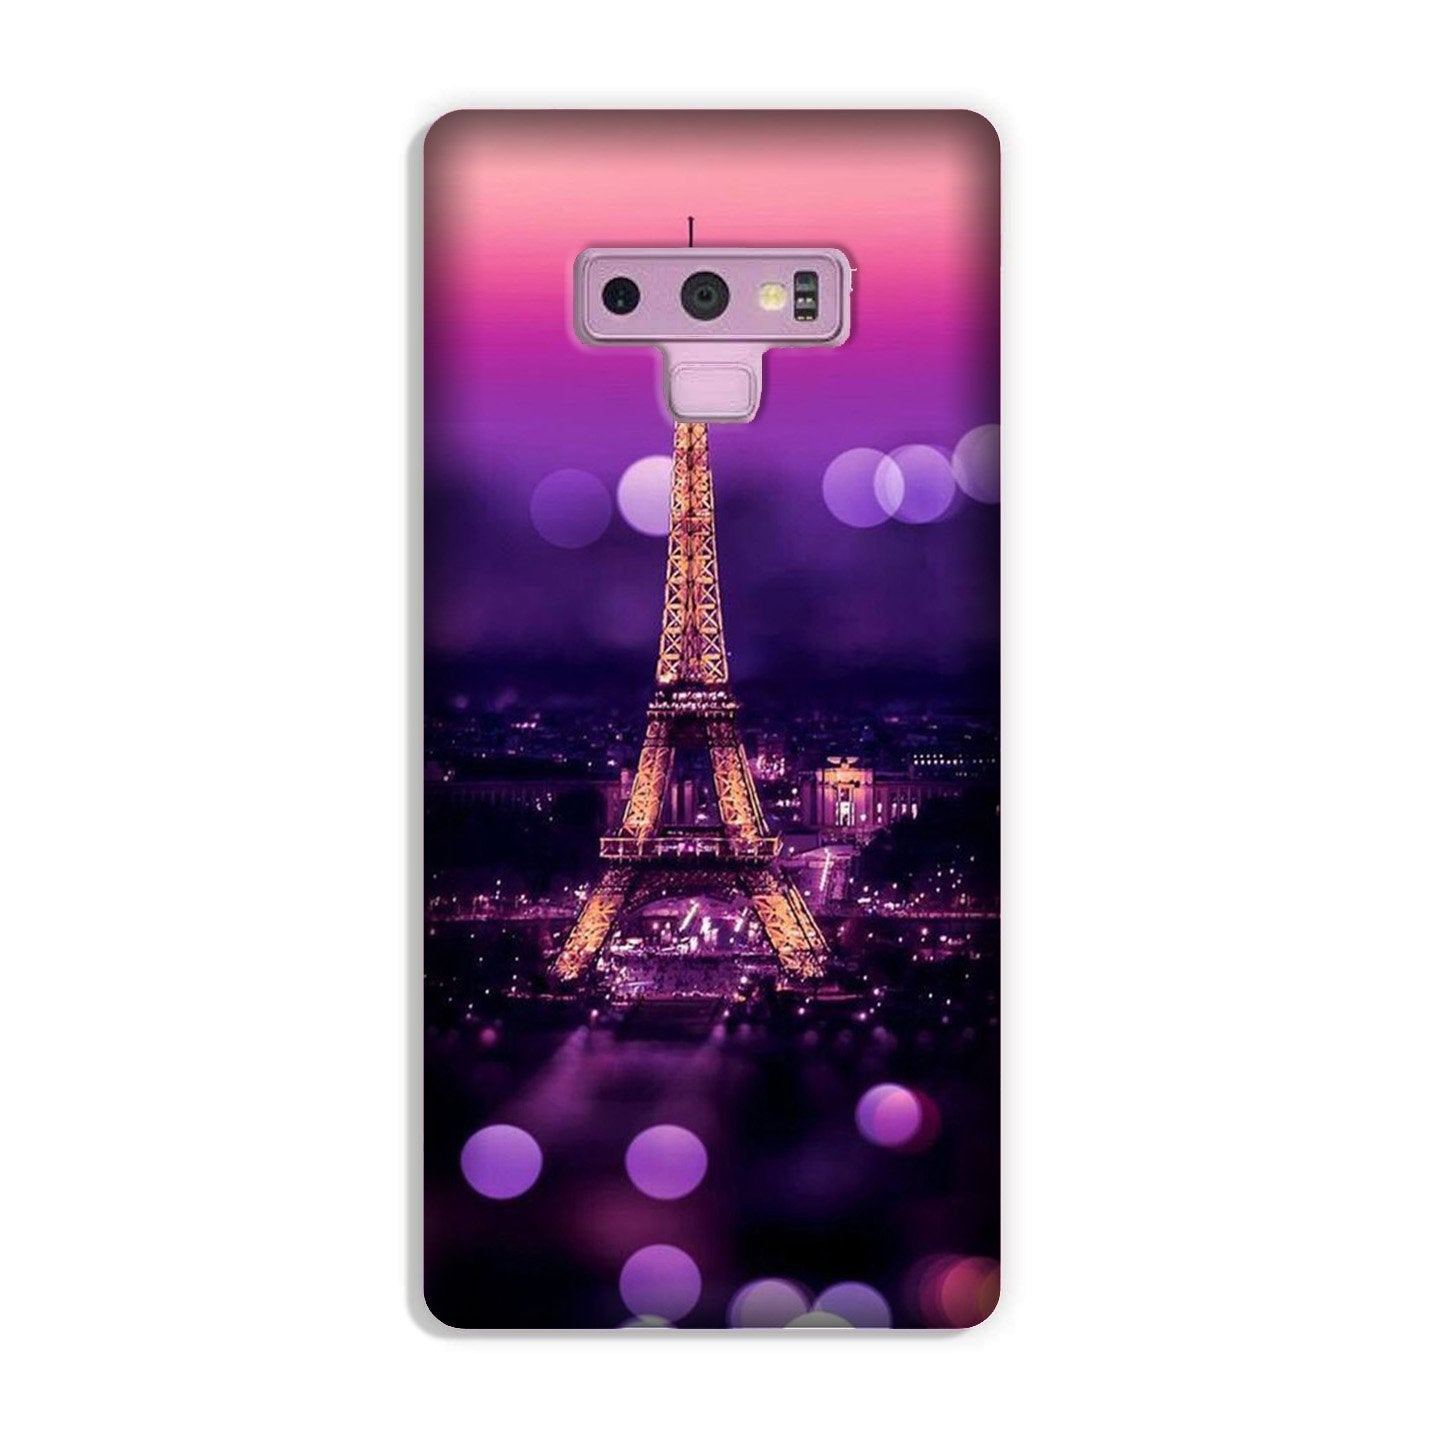 Eiffel Tower Case for Galaxy Note 9